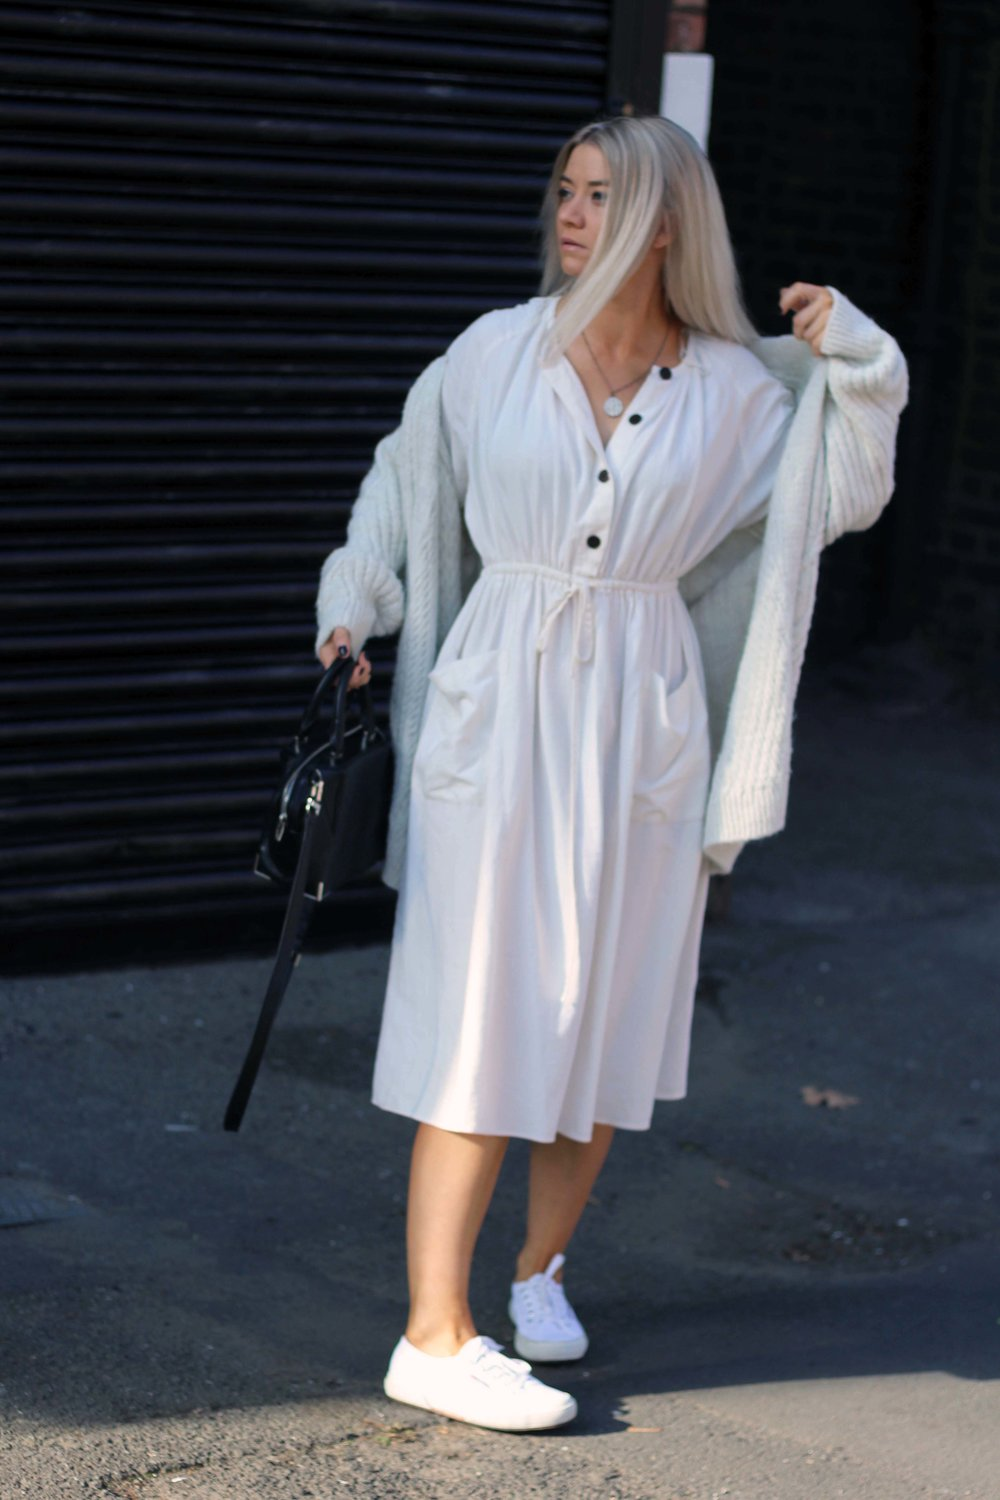 zara linen dress, cream cardigan, superga trainers, northern magpie, joey taylor 5